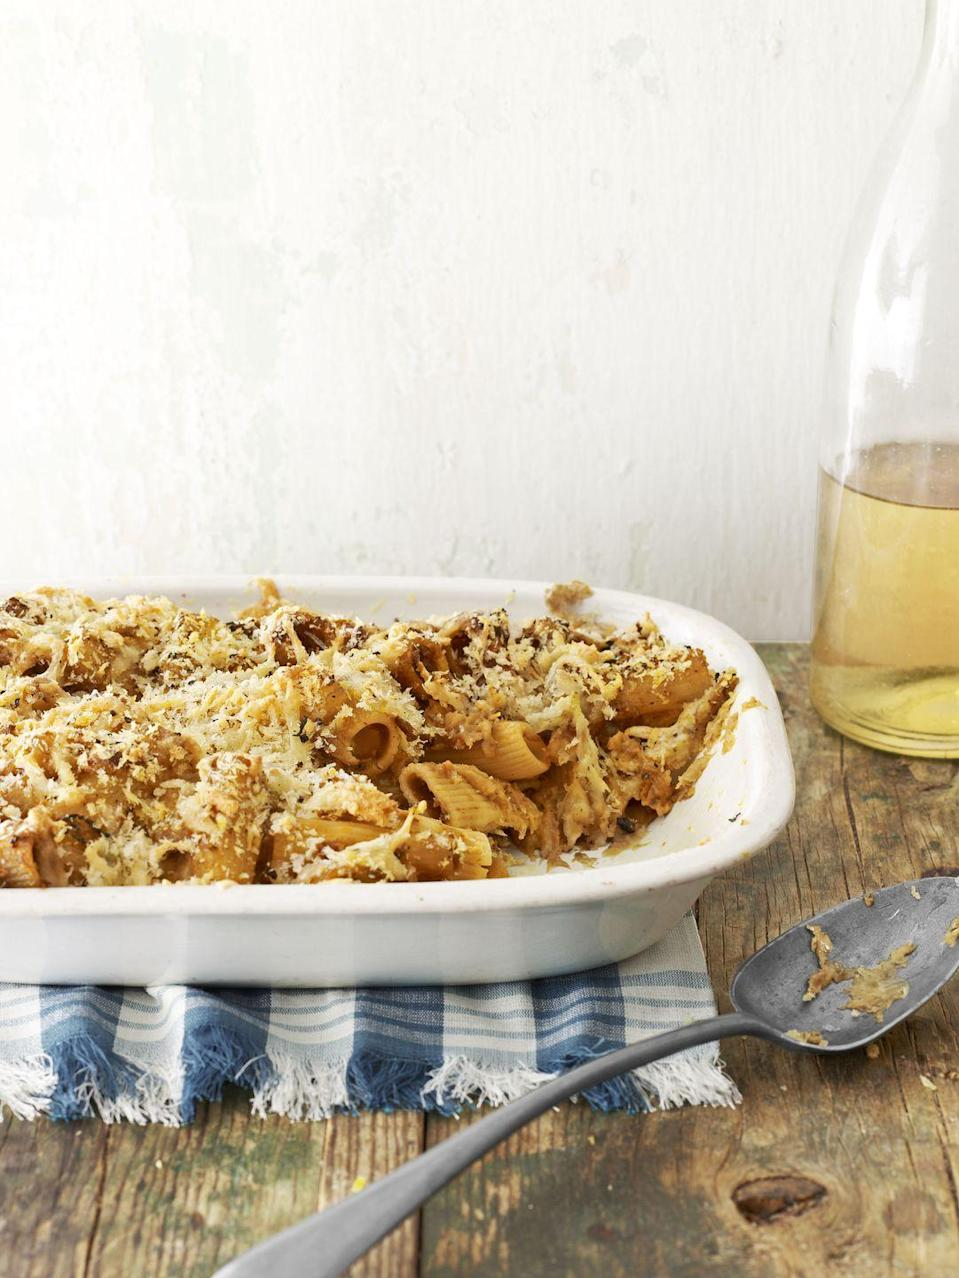 """<p>Sweet squash adds color and seasonal flavor to this creamy, cheesy pasta dish.</p><p><strong><a href=""""https://www.countryliving.com/food-drinks/recipes/a4139/baked-butternut-squash-rigatoni-recipe-clv0213/"""" rel=""""nofollow noopener"""" target=""""_blank"""" data-ylk=""""slk:Get the recipe."""" class=""""link rapid-noclick-resp"""">Get the recipe.</a></strong></p>"""